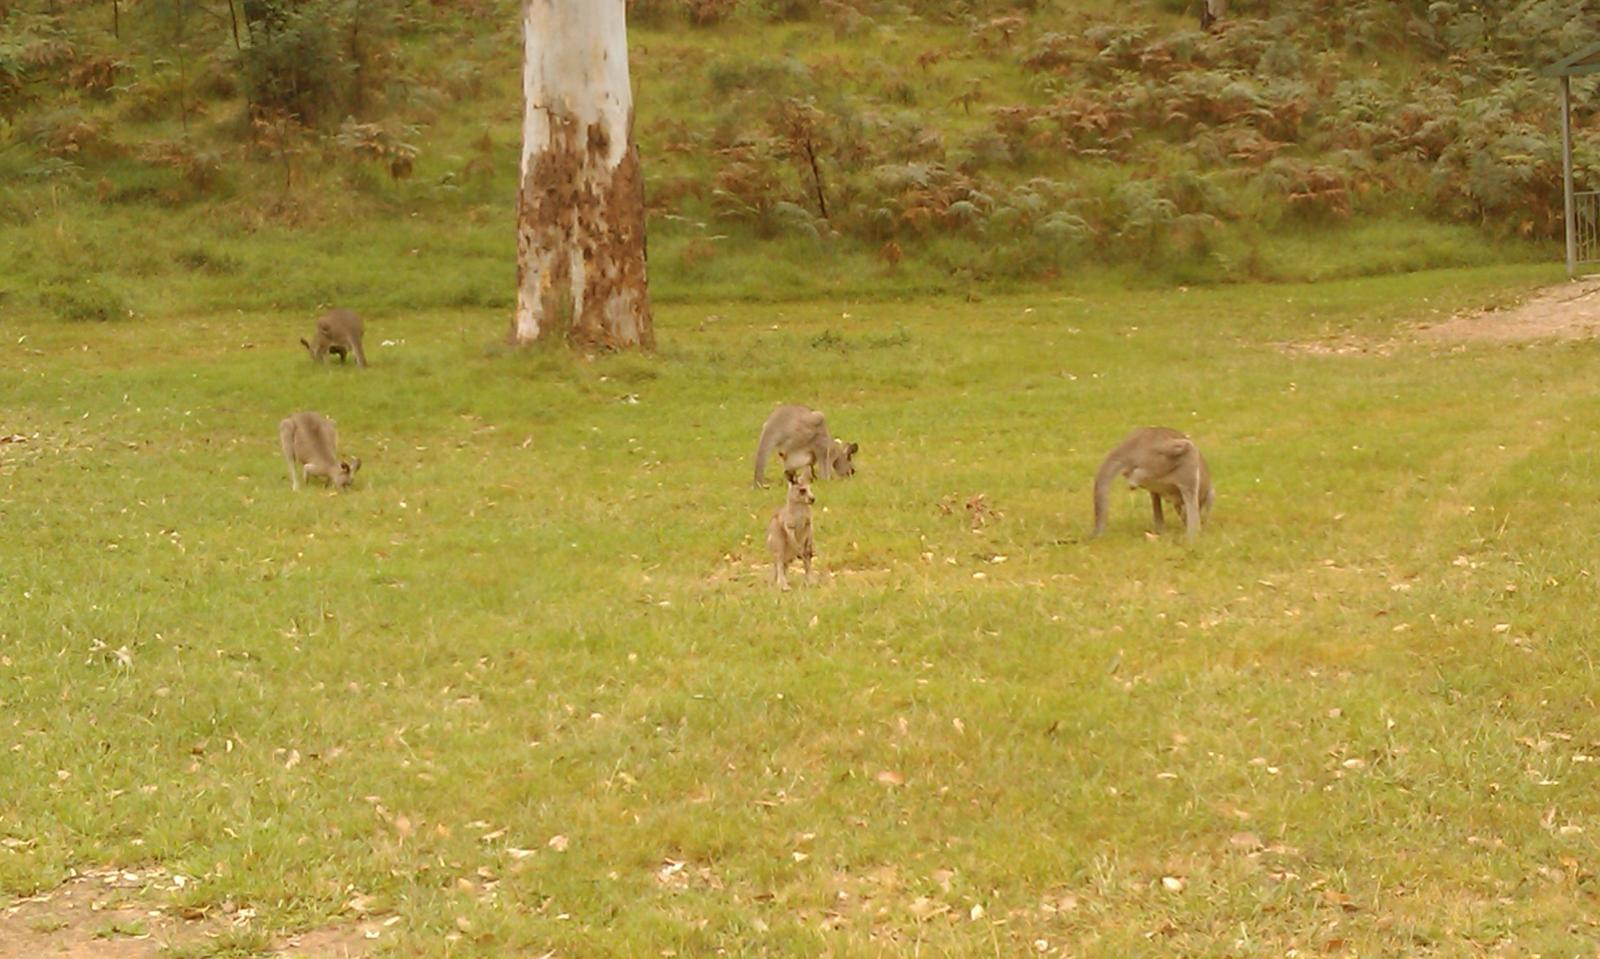 Blue Mountains - kangaroos (notice one joey in pouch)